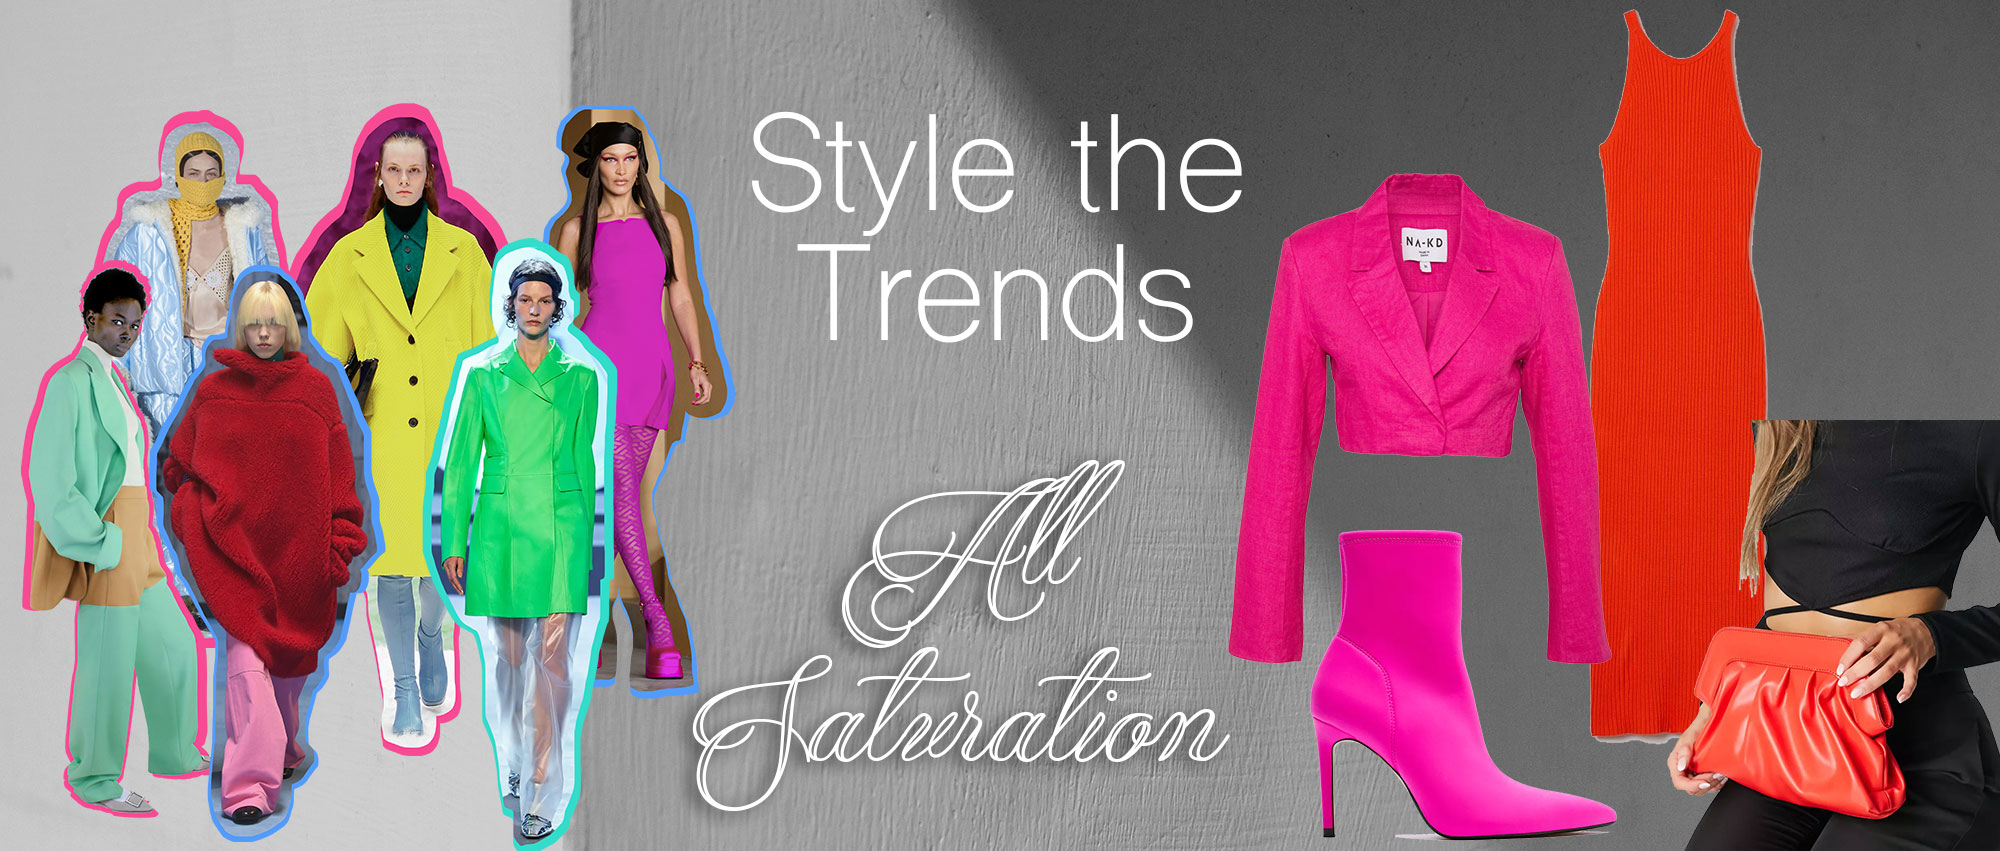 Style-the-Trends_All-Saturation_header